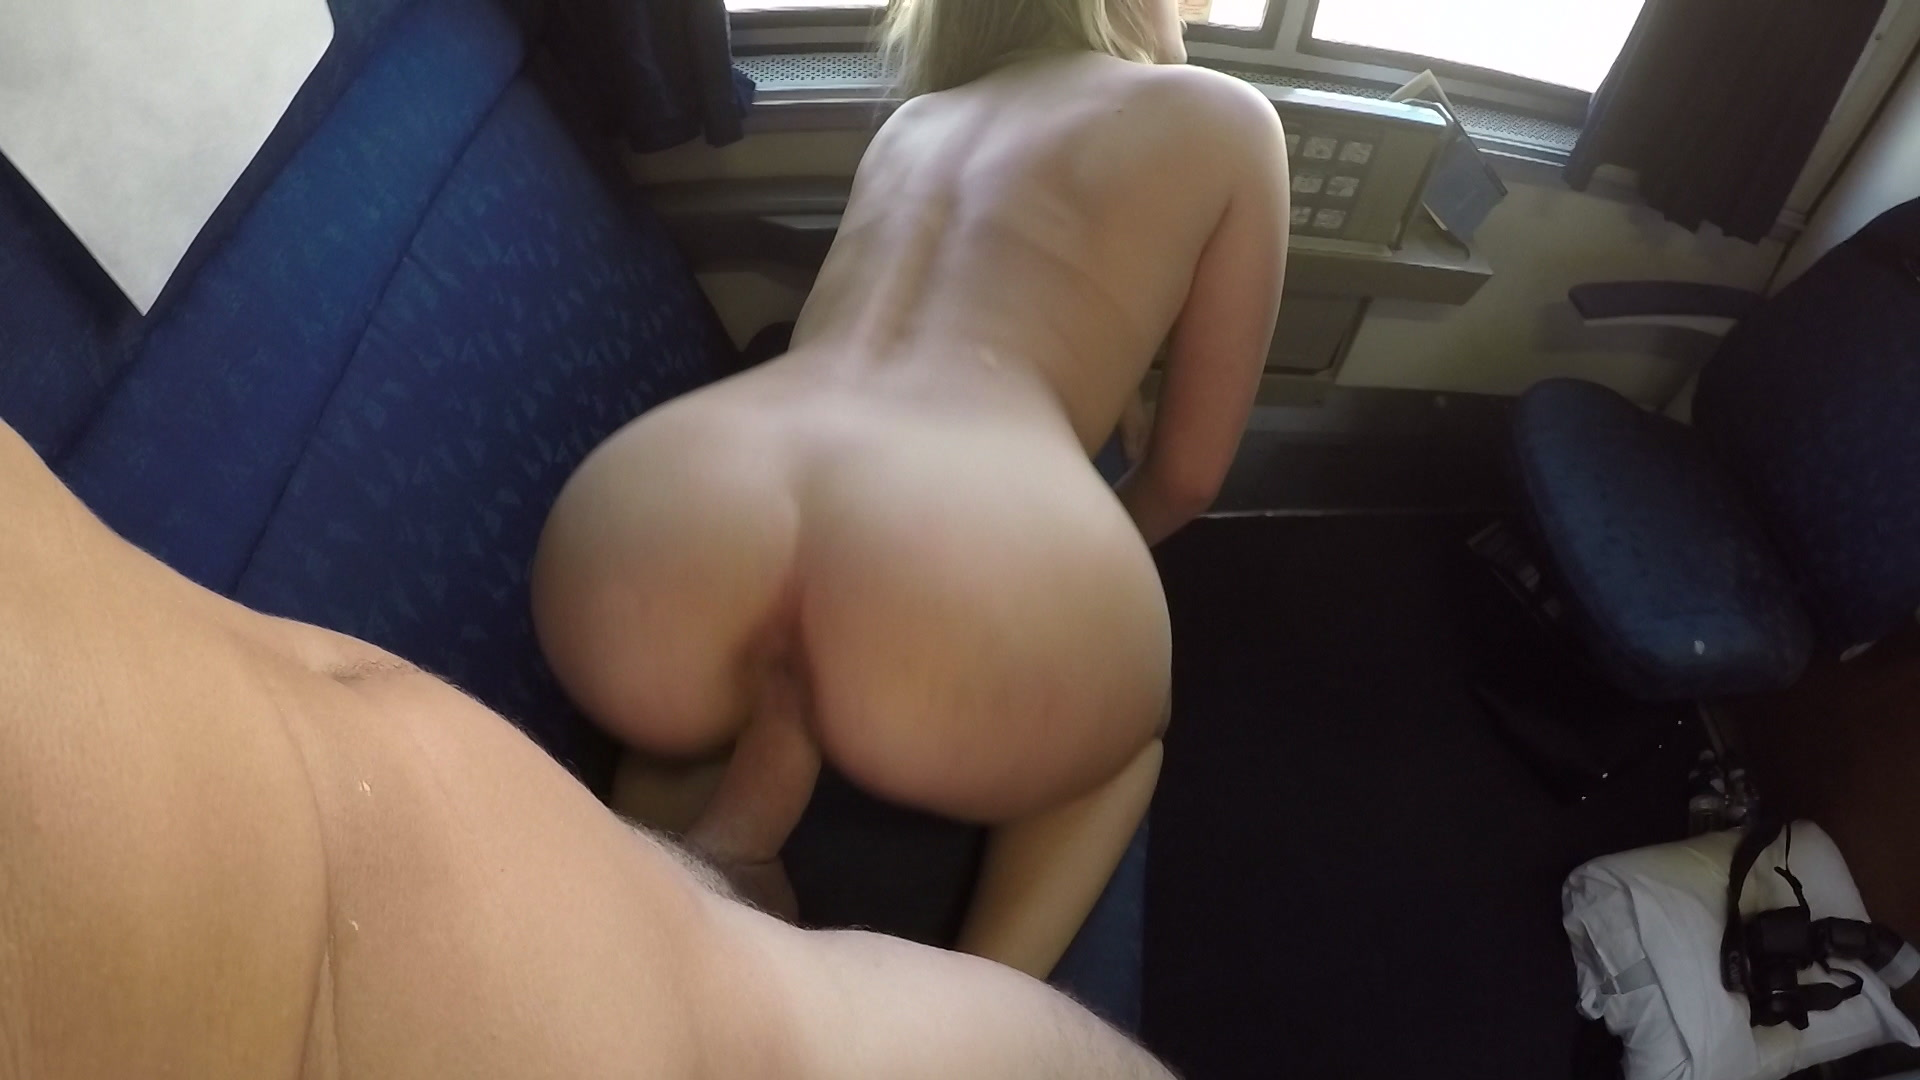 Lovely couples sex on the train, adiwase geral boobs